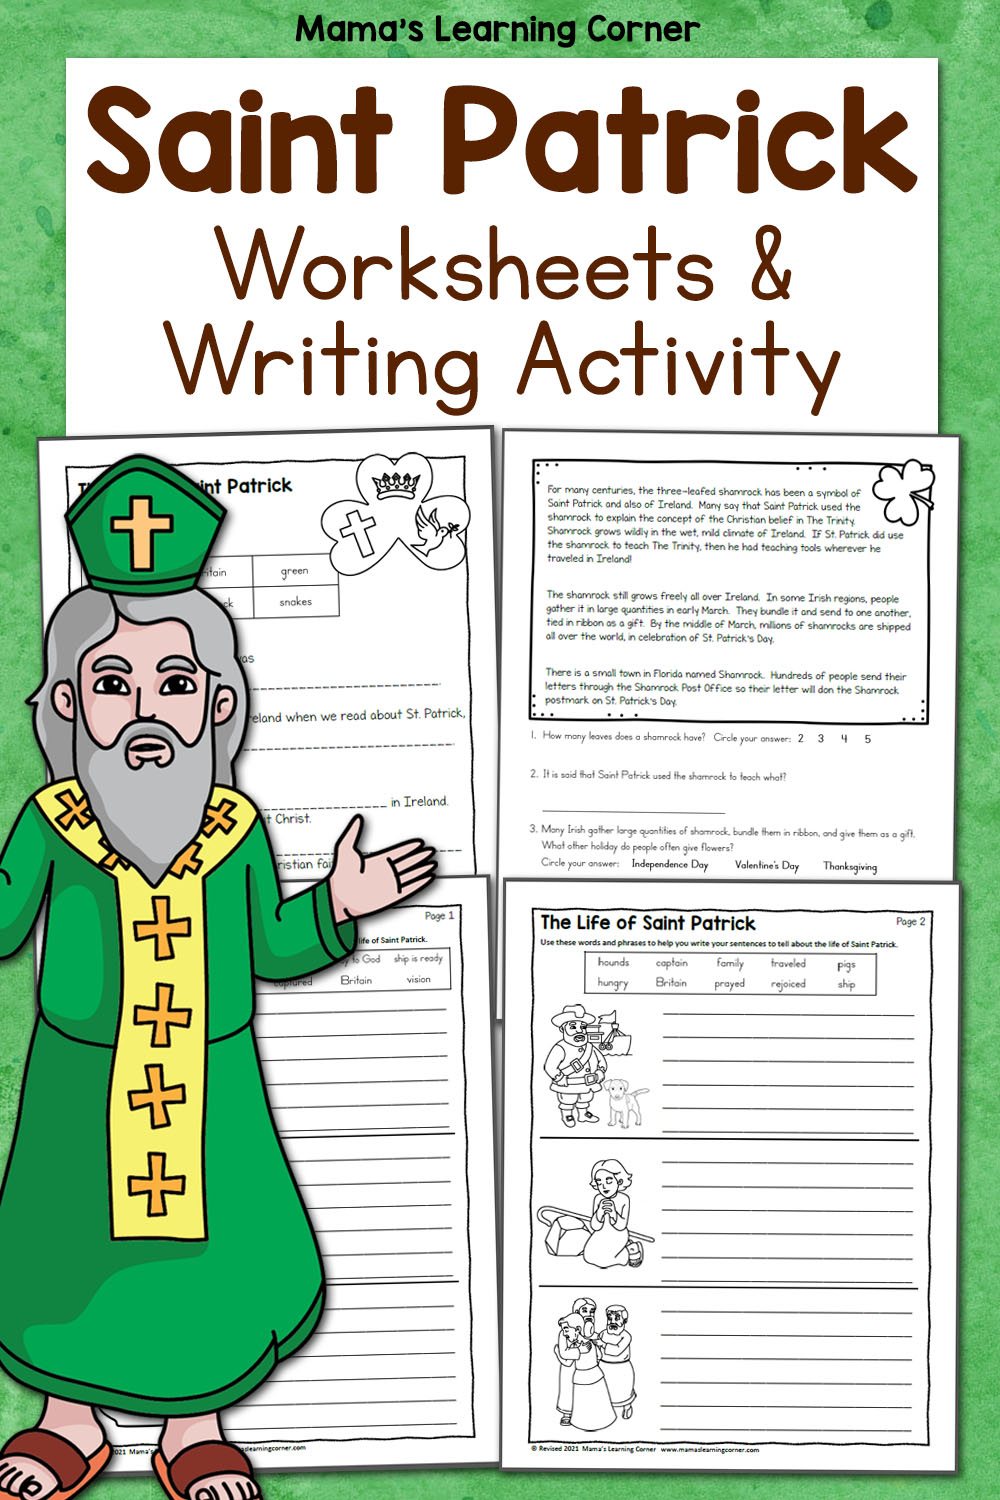 hight resolution of Saint Patrick Worksheets for 2nd-4th Graders - Mamas Learning Corner